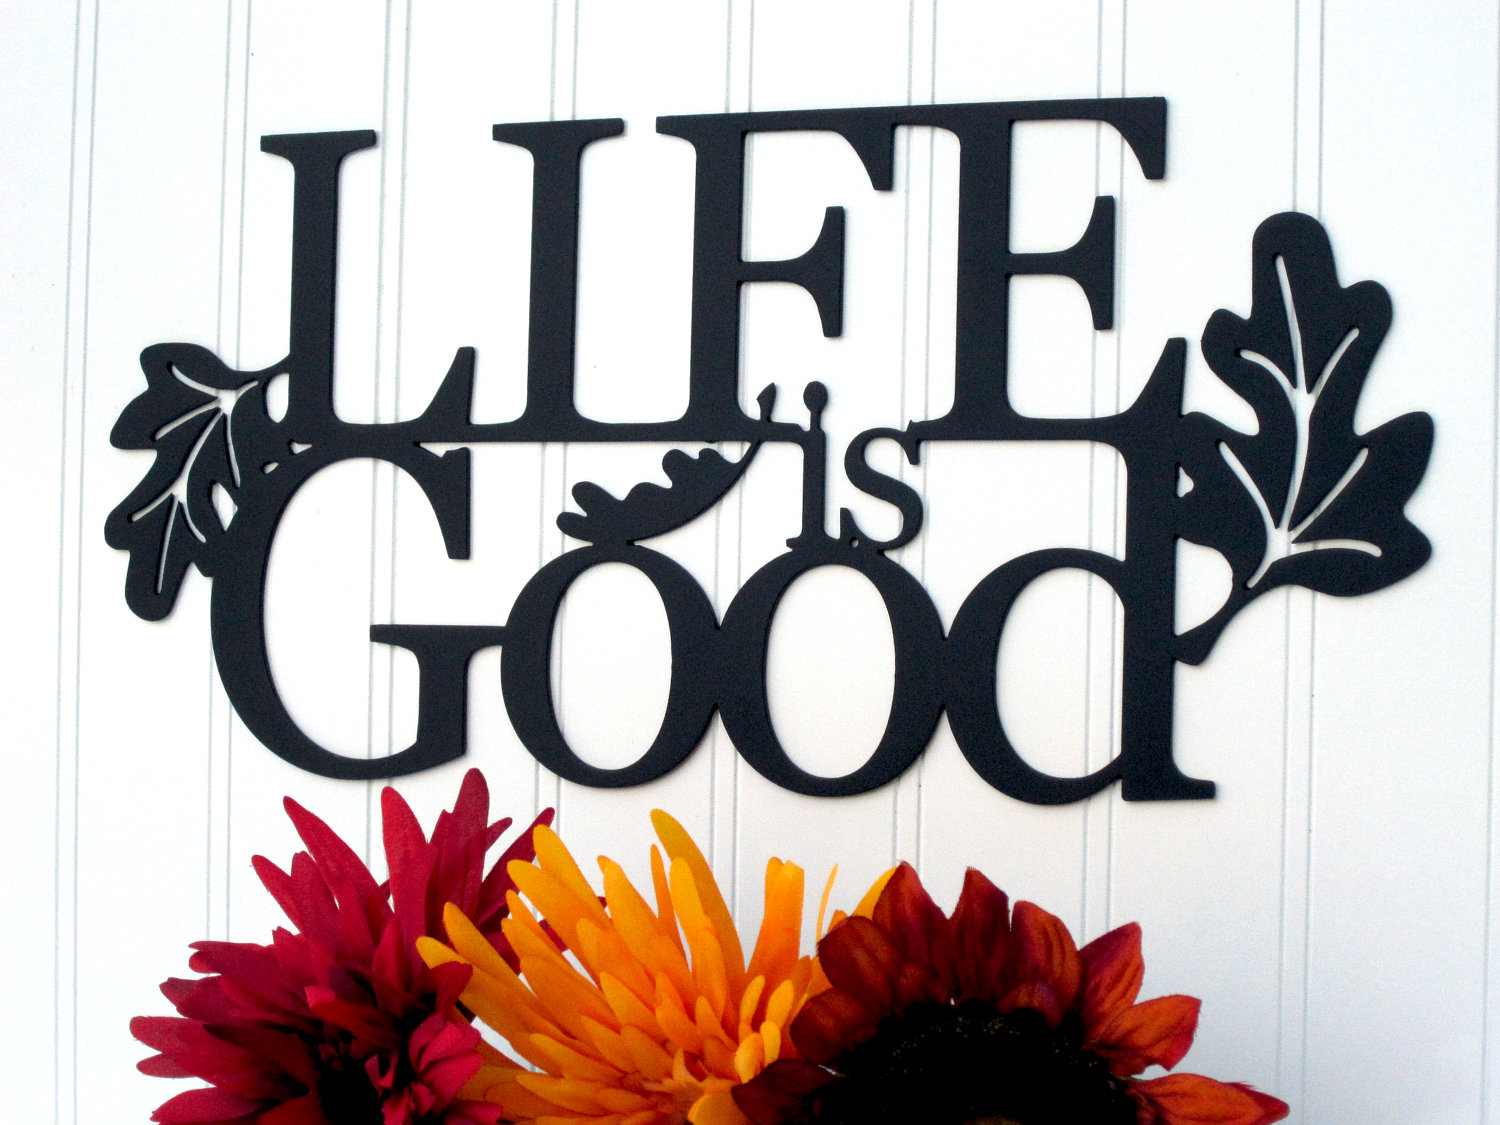 Refined inspirations fairs and festivals fairsandfestivals life is good metal art wall decor metal wall decoration amipublicfo Gallery